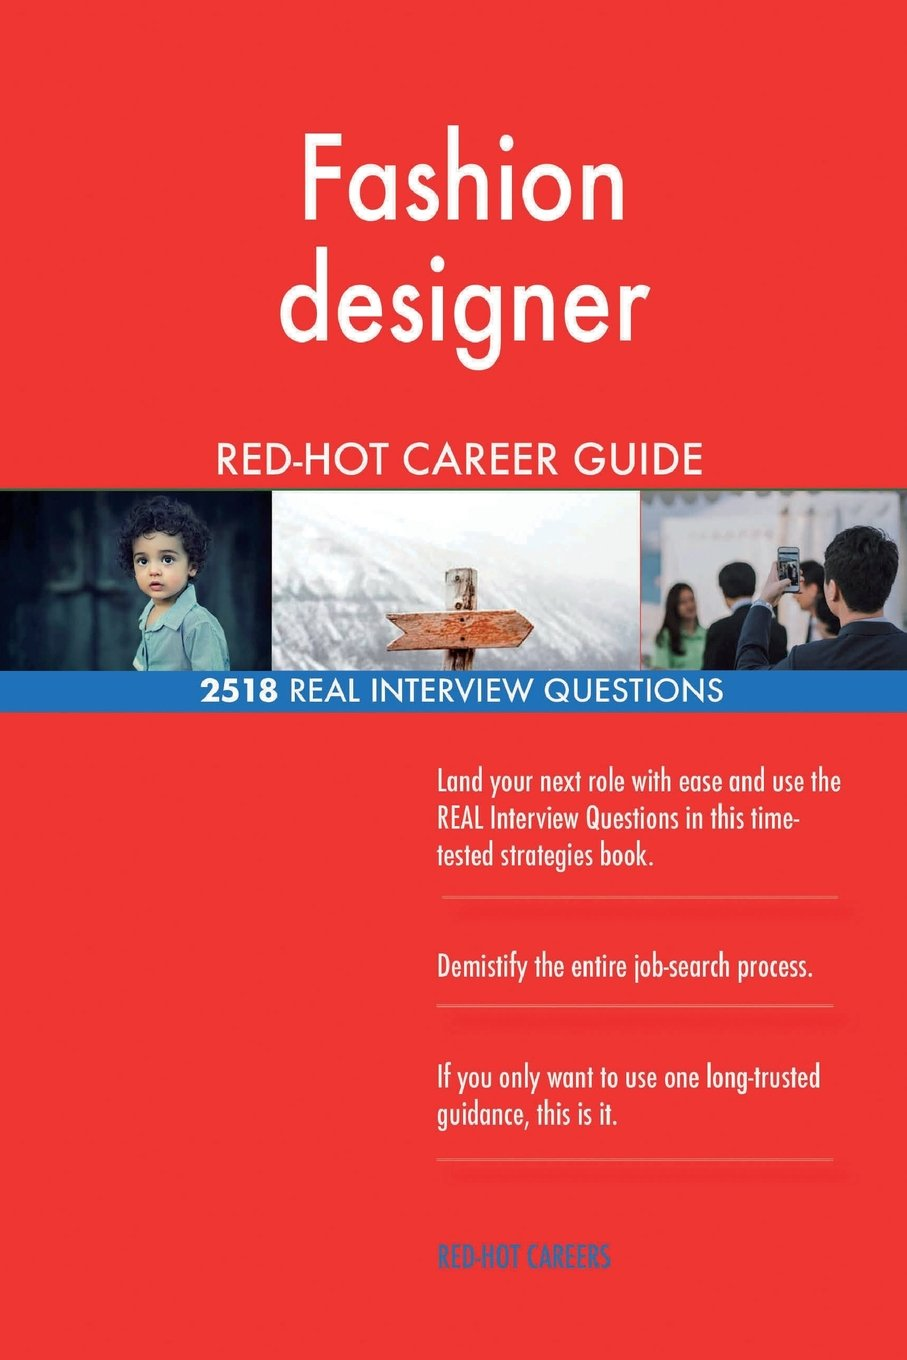 Fashion Designer Red Hot Career Guide 2518 Real Interview Questions Careers Red Hot 9781720646761 Amazon Com Books